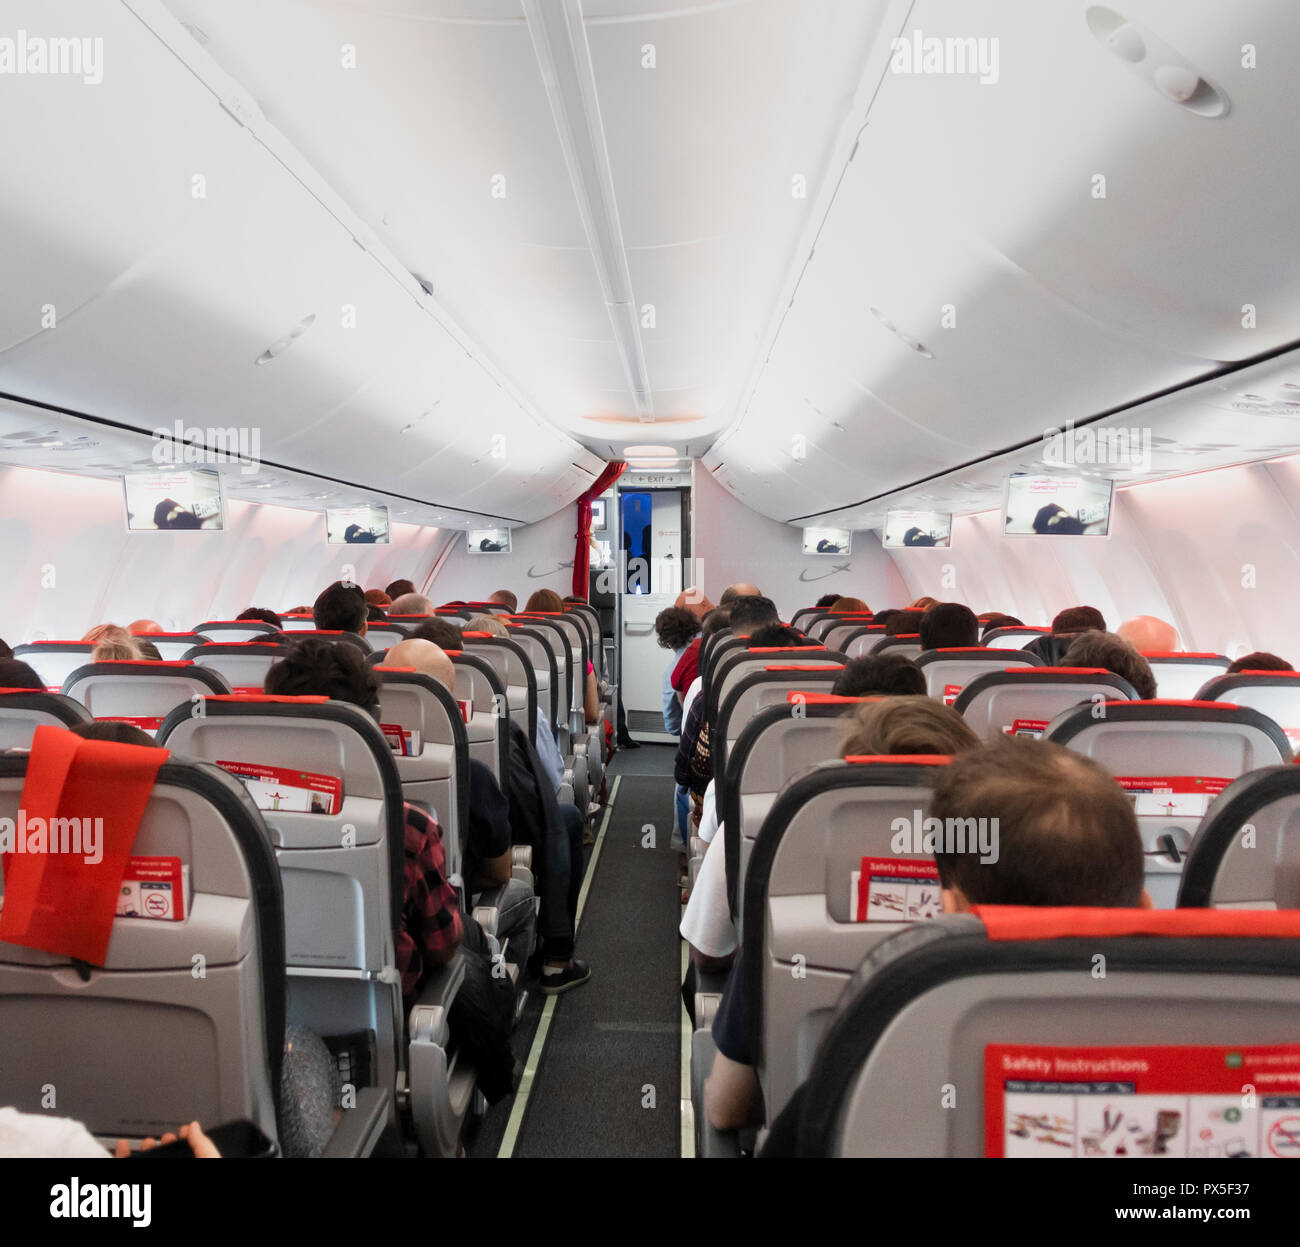 Drop down Video Bildschirme auf kostengünstige Norwegian Airlines Flug. Stockbild